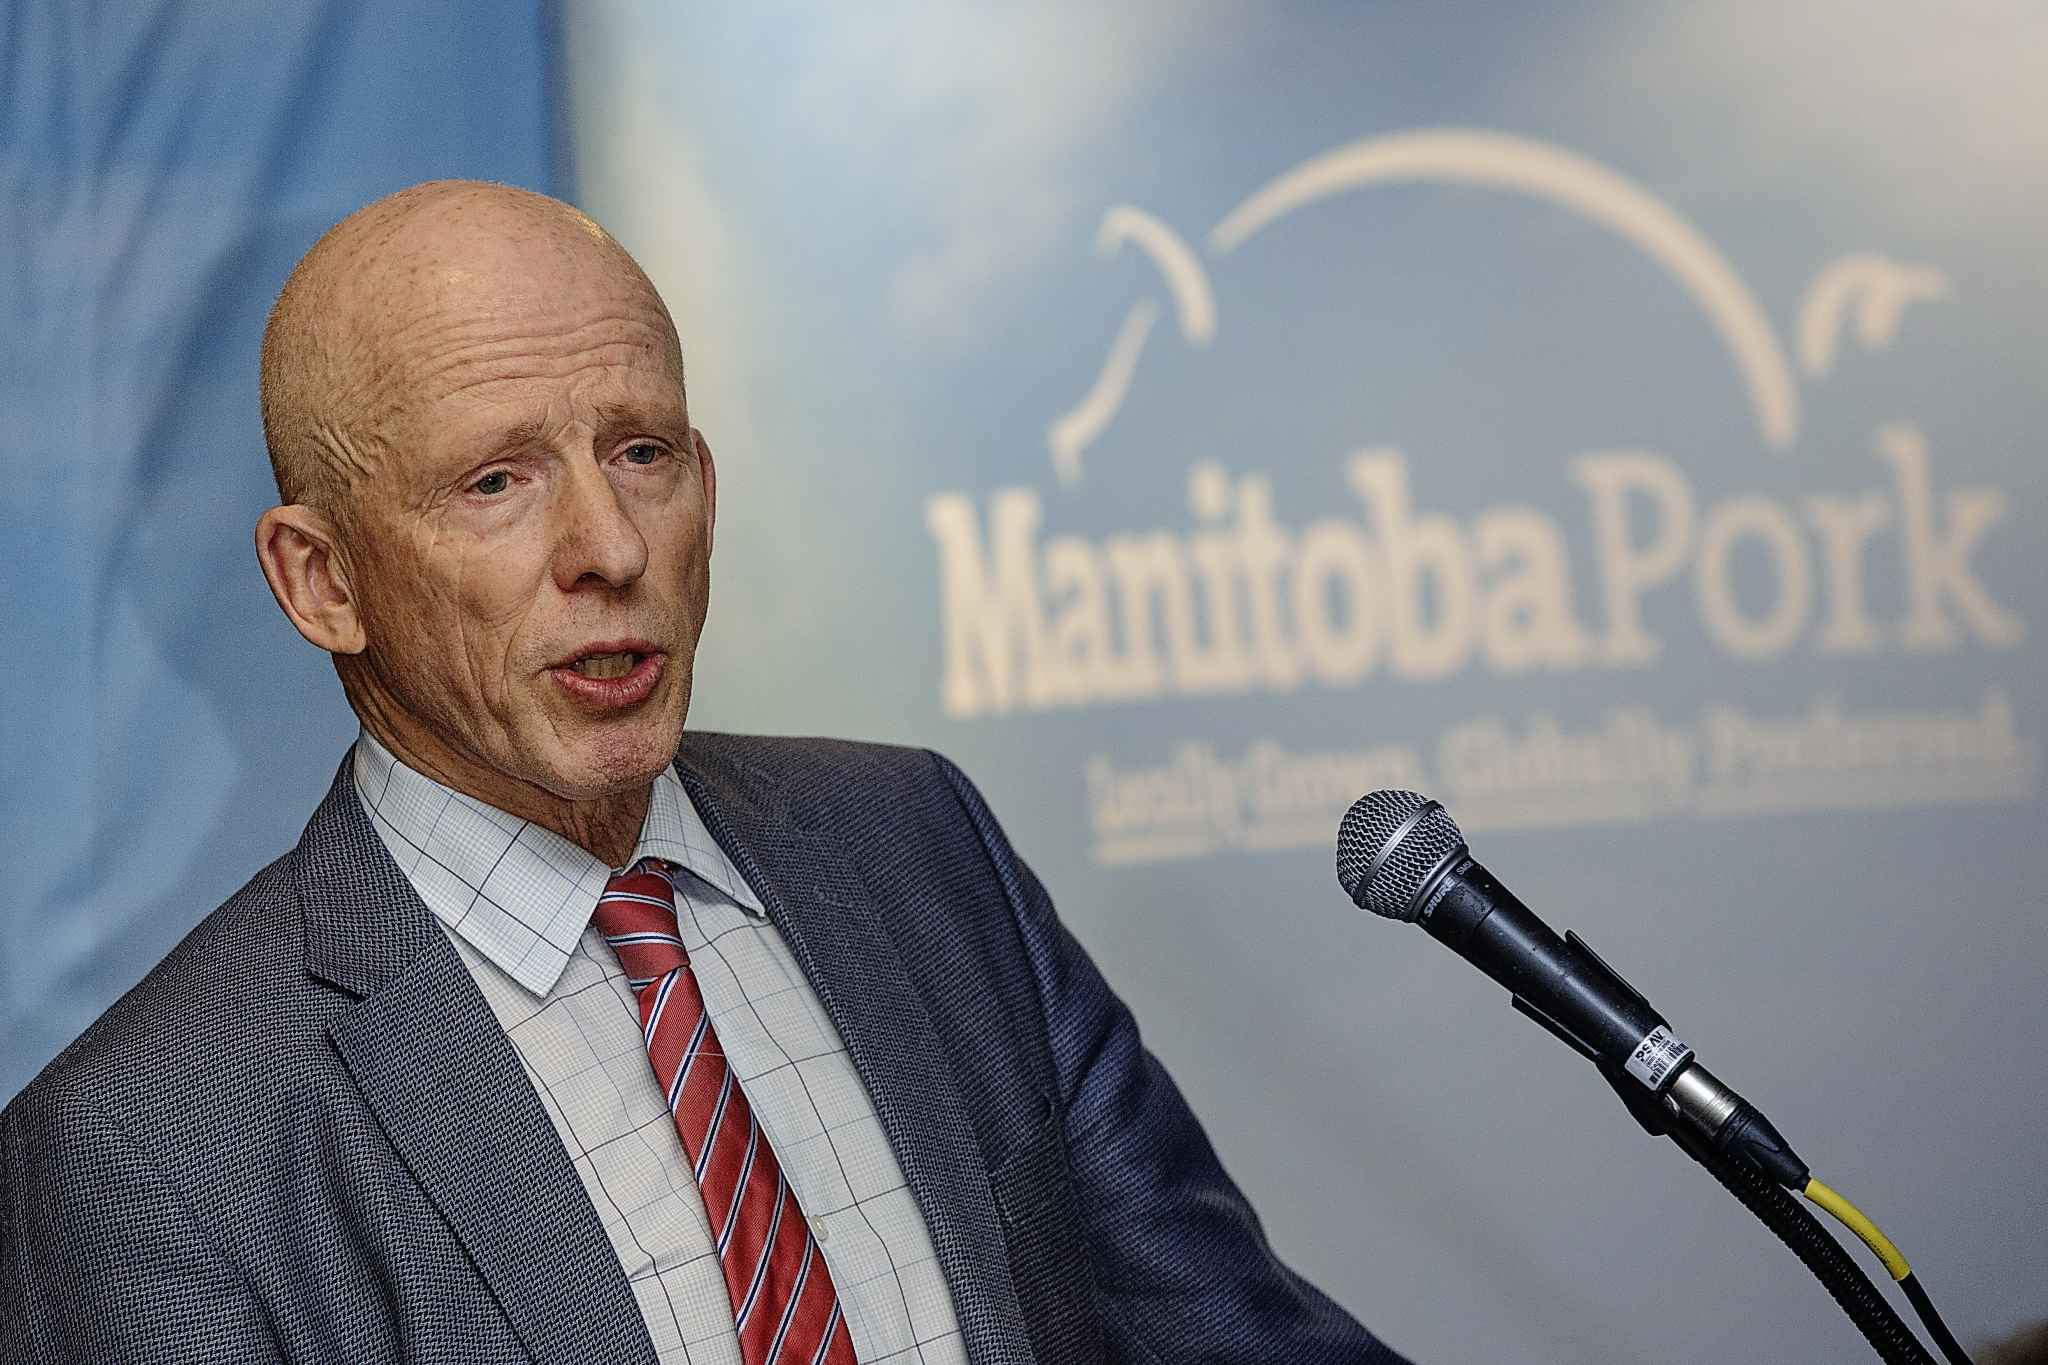 George Matheson, chairman of the The Manitoba Pork Council said permit changes 'will render the program pointless for most employers and do nothing to resolve the shortfall' in agriculture.